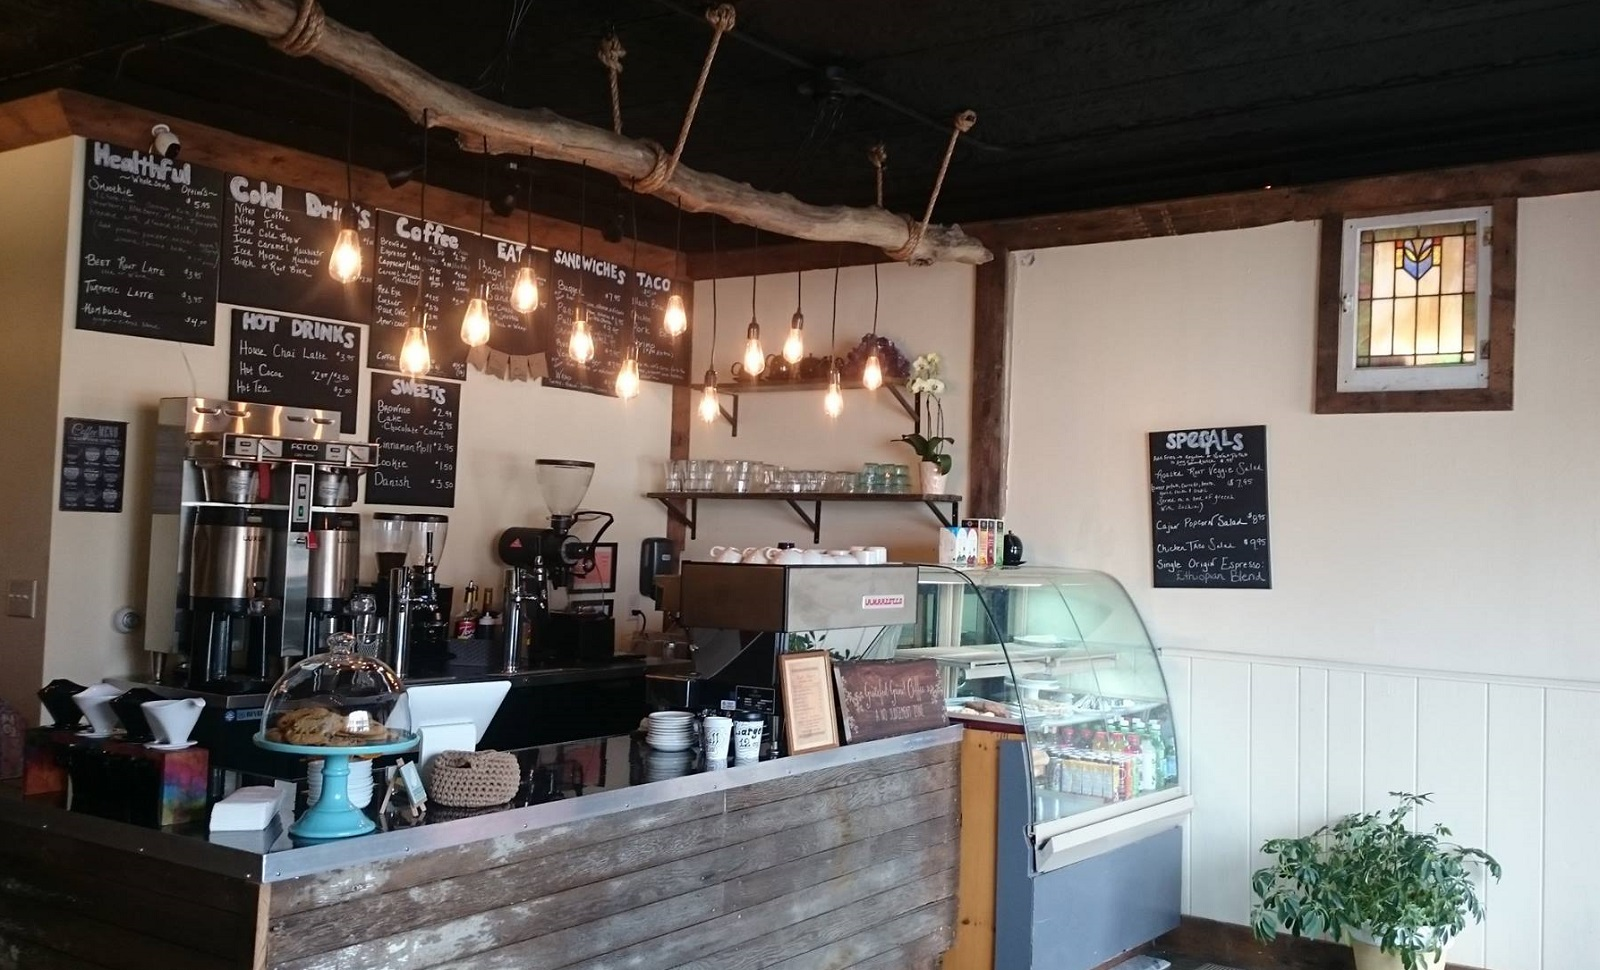 Coffee and espresso shop The Grateful Grind, new to University Heights. (via Grateful Grind)